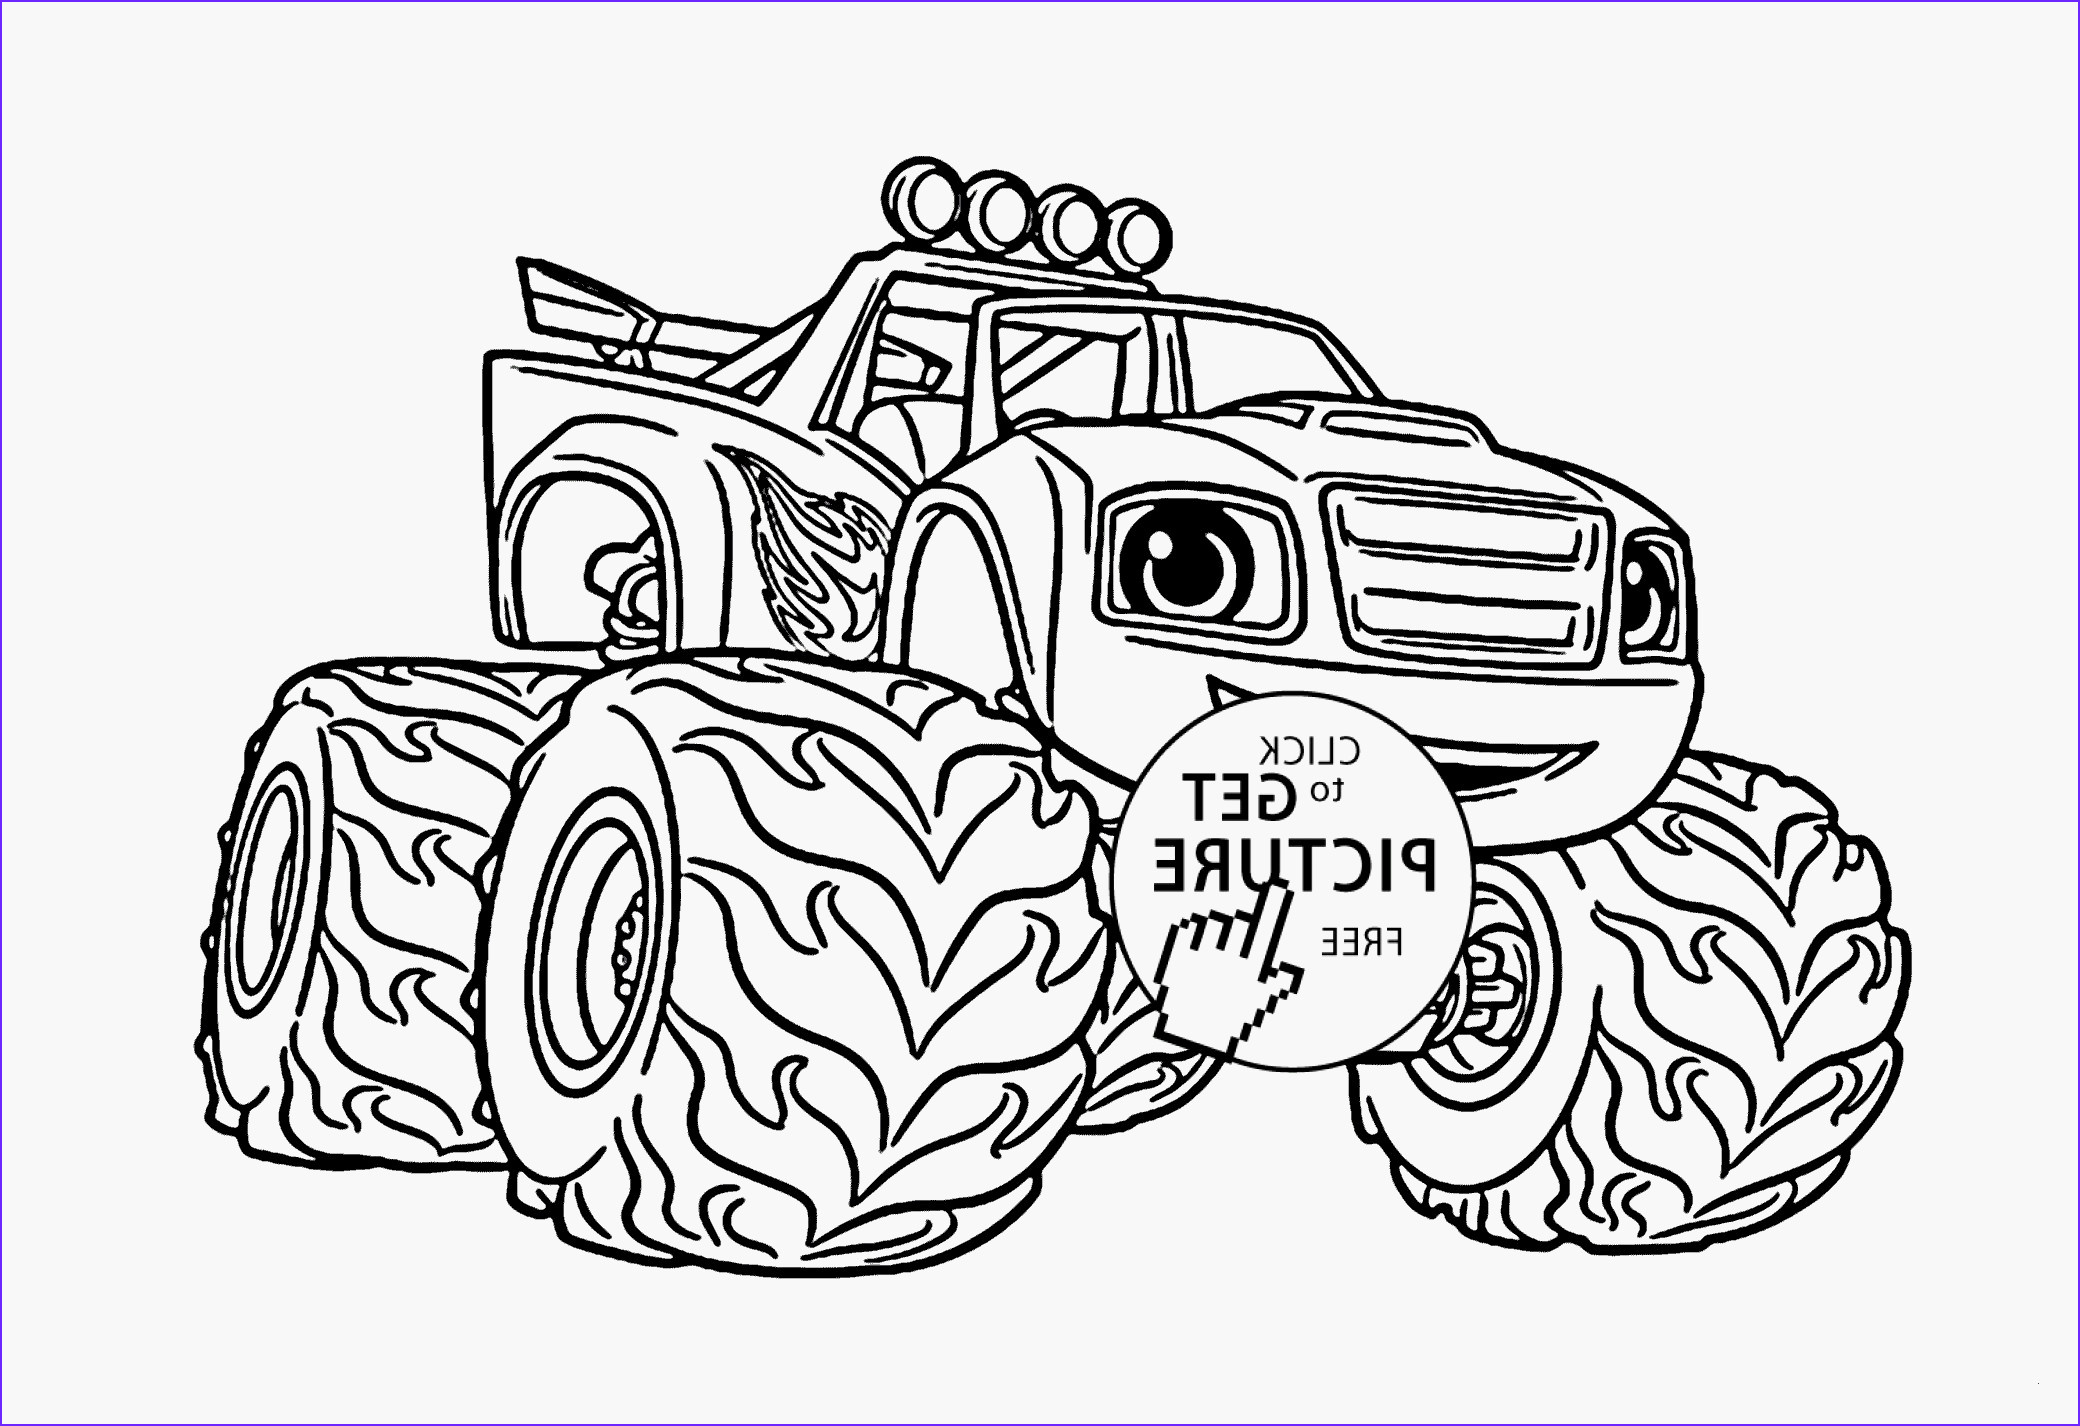 Blaze Coloring Sheet Inspirational Image 28 Blaze Monster Truck Coloring Pages Collection